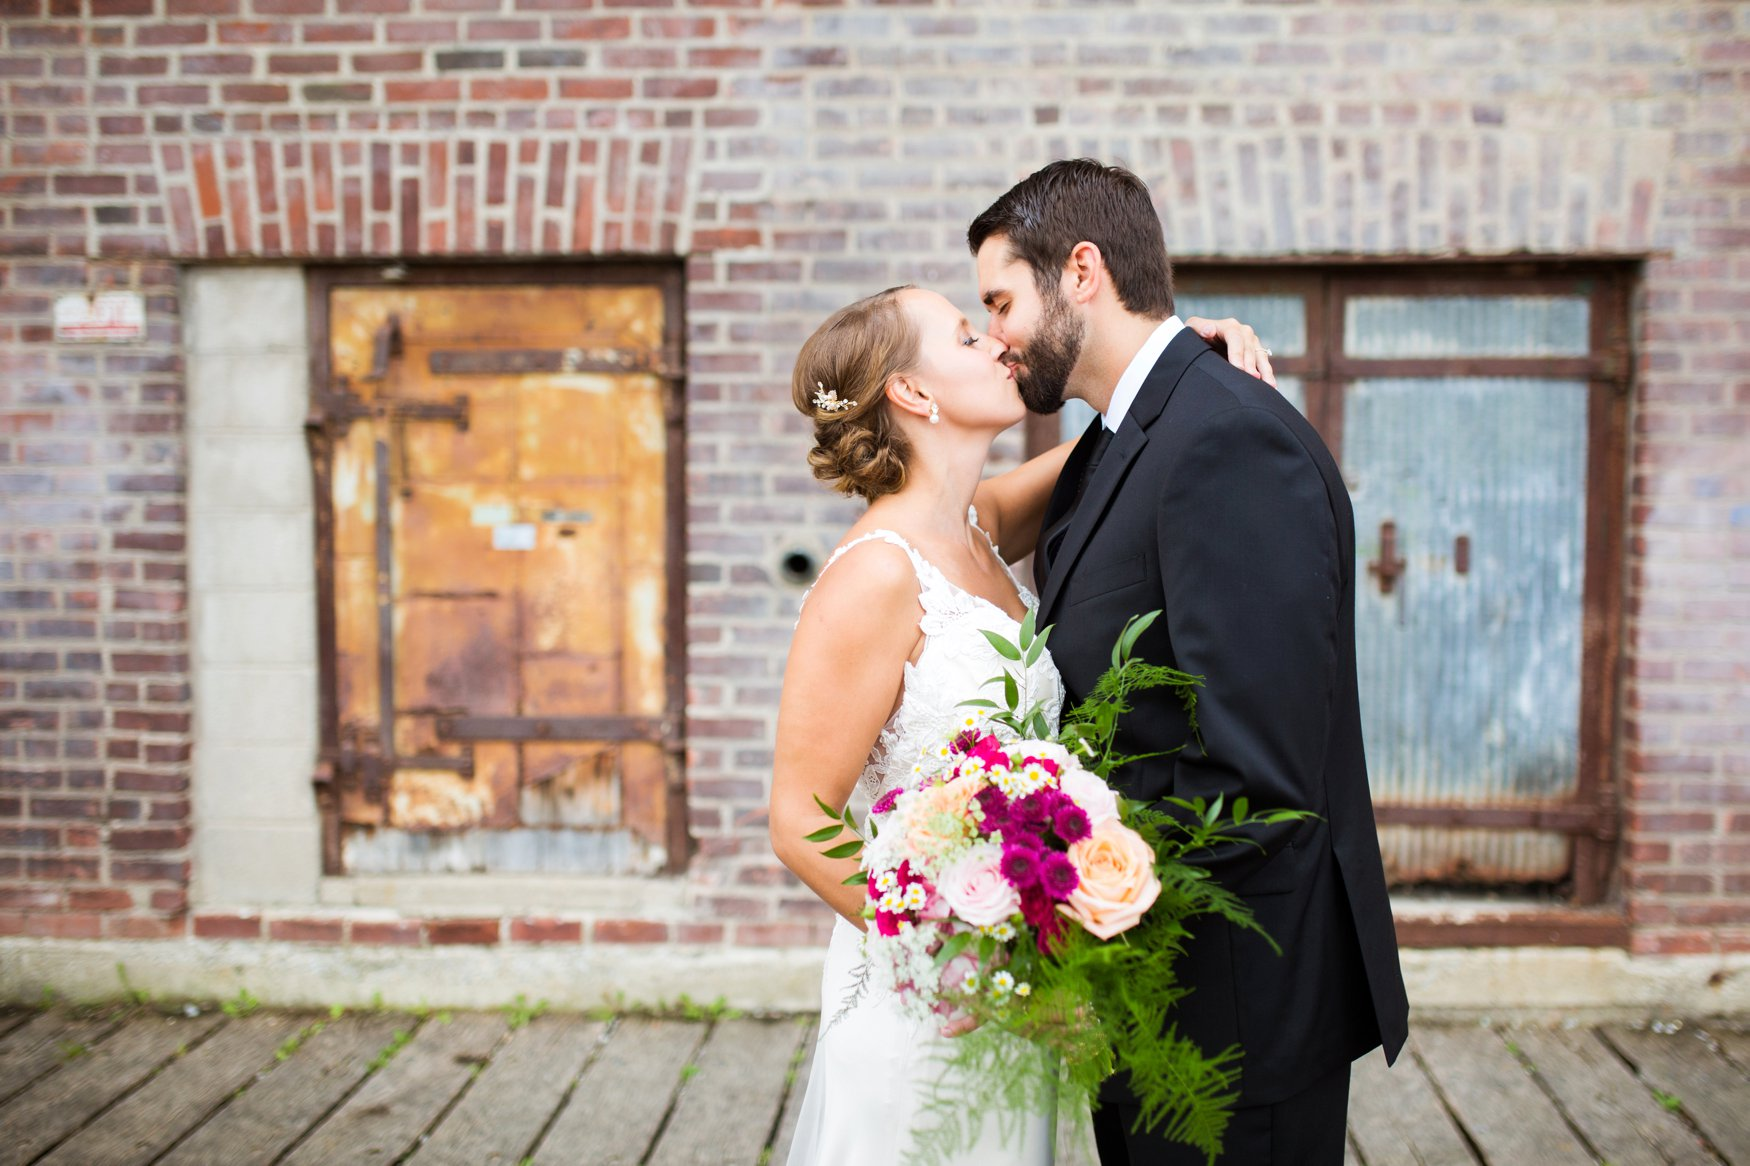 MN Wedding Planner Sixpence Events & Planning